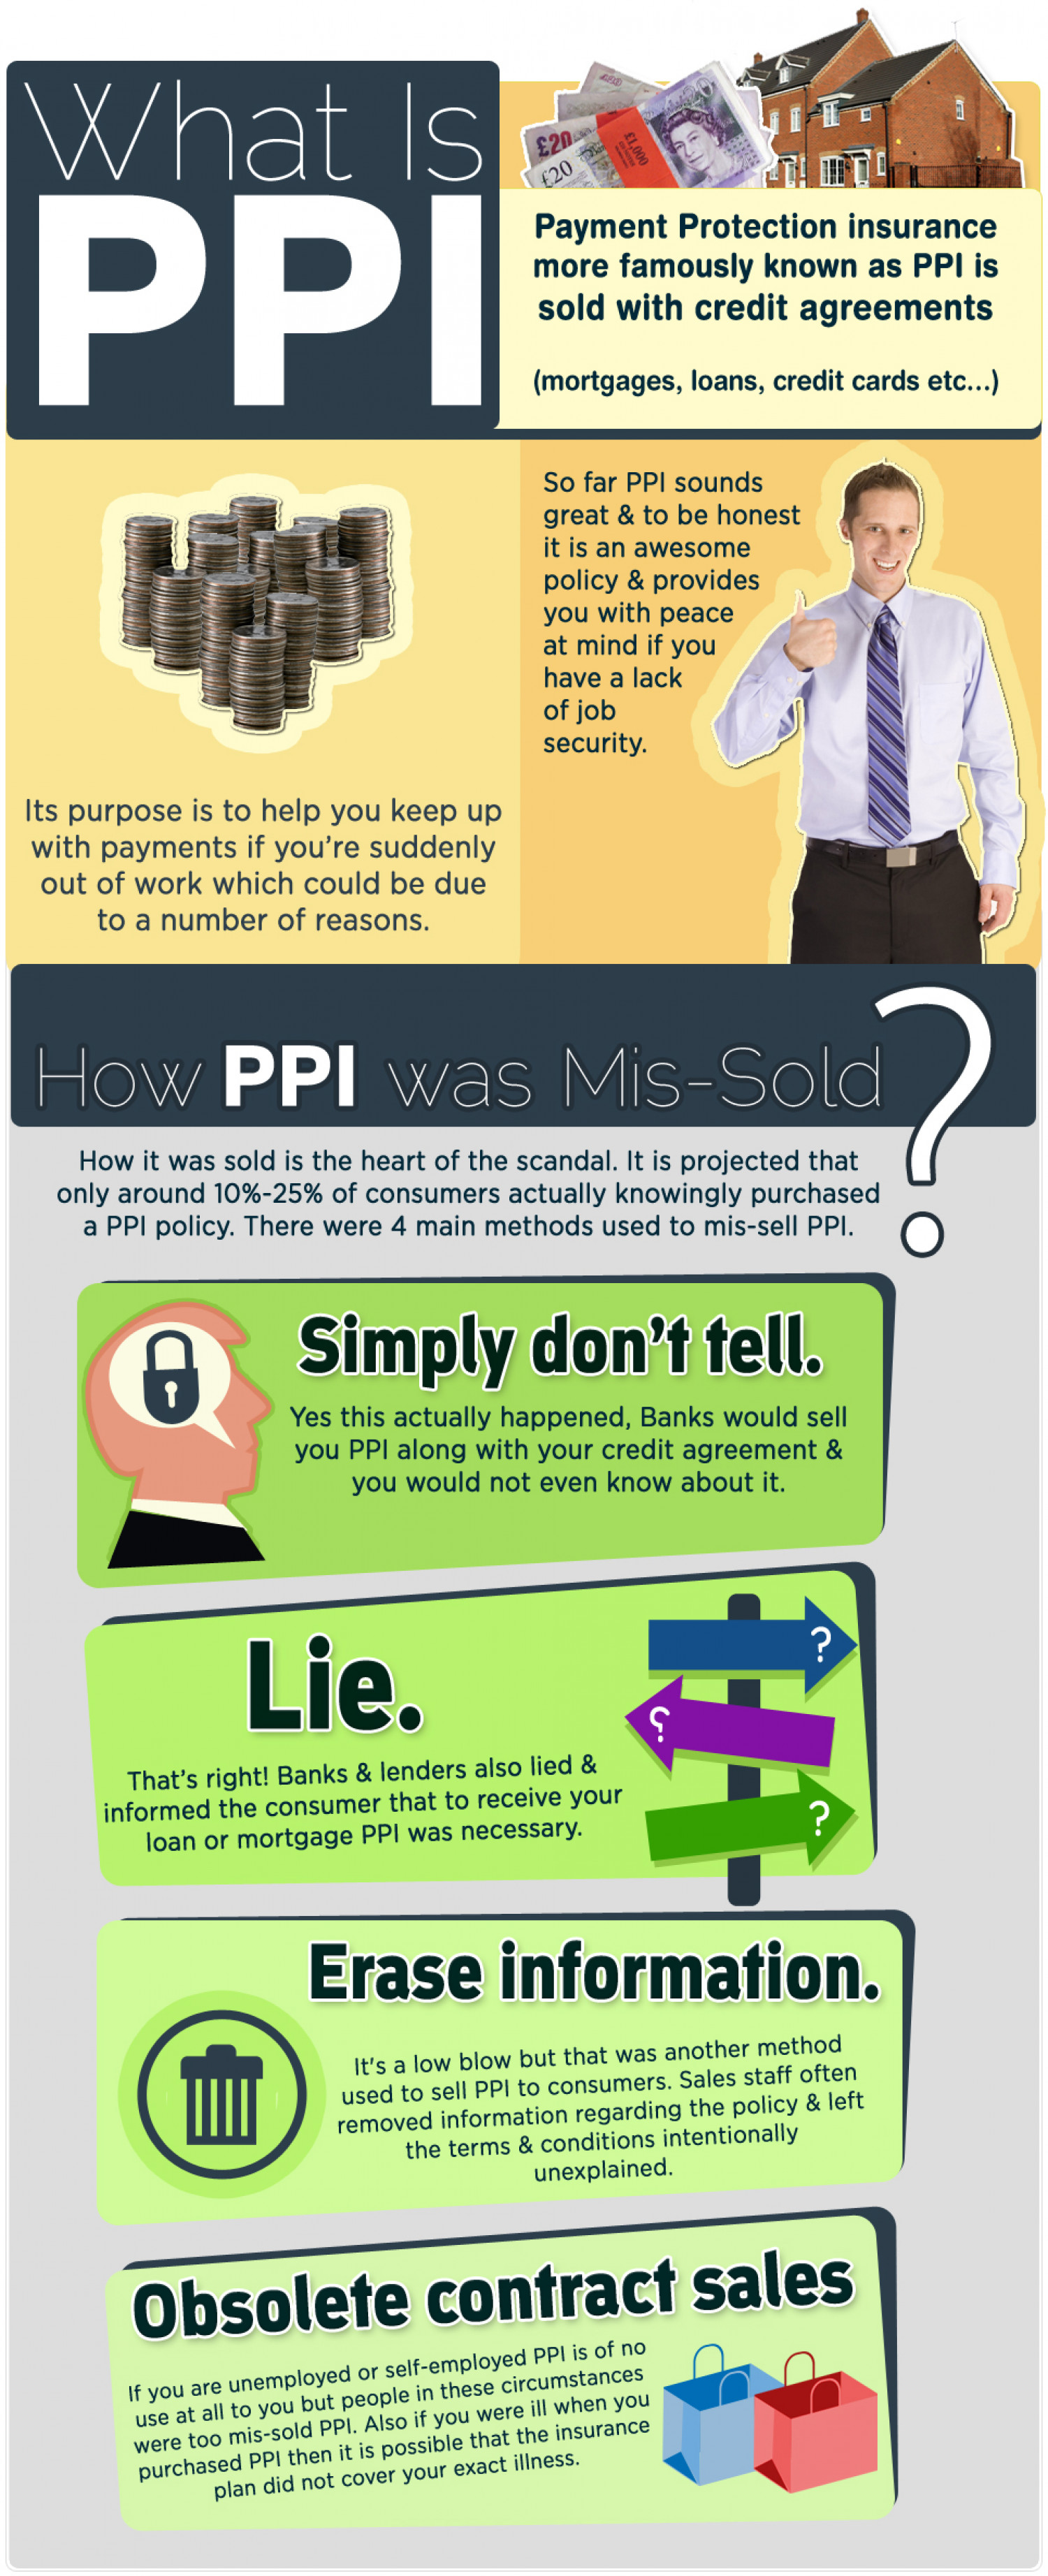 What Is PPI? Infographic